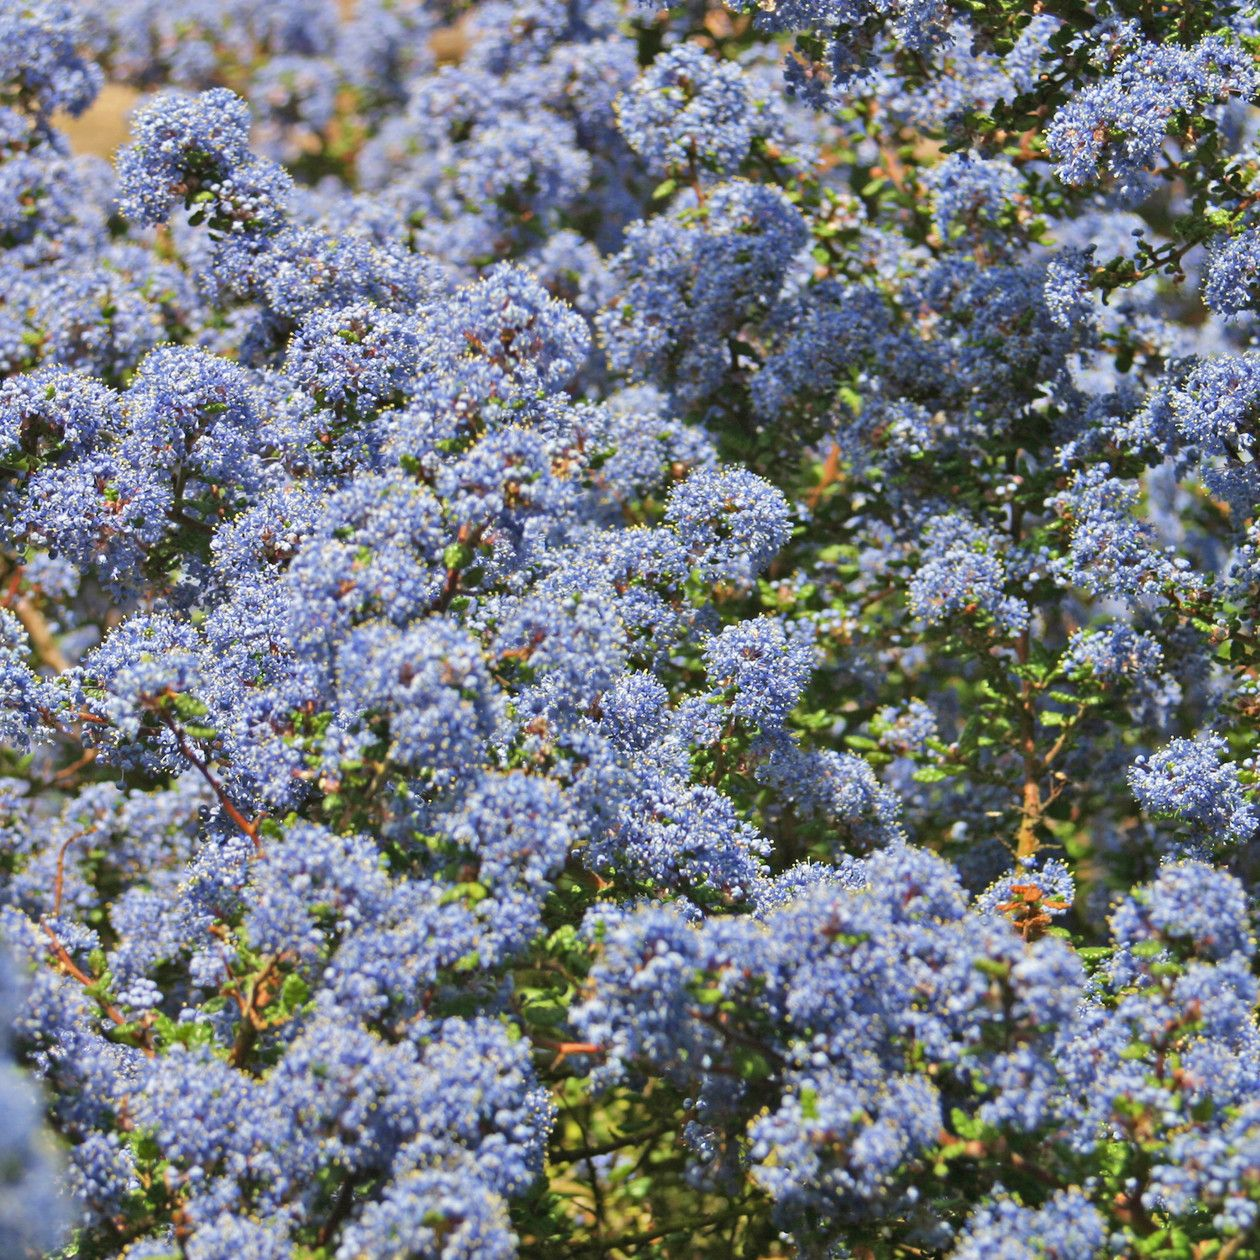 Ceanothus Dark Star Californian Lilac The Pretty Blue Flowering